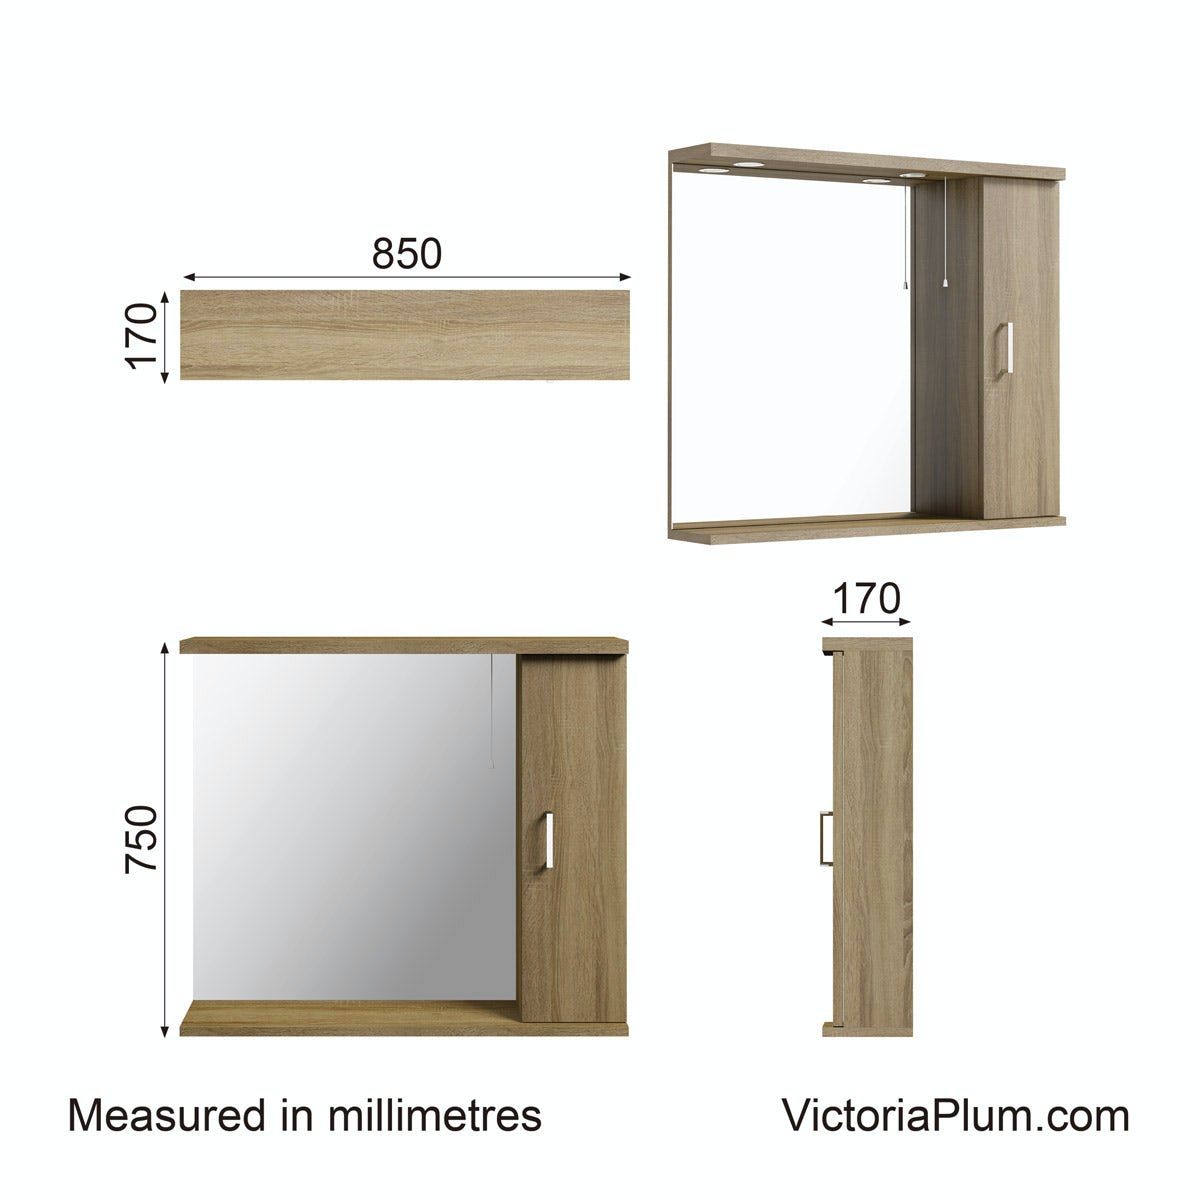 Dimensions for Sienna oak bathroom mirror with lights 850mm